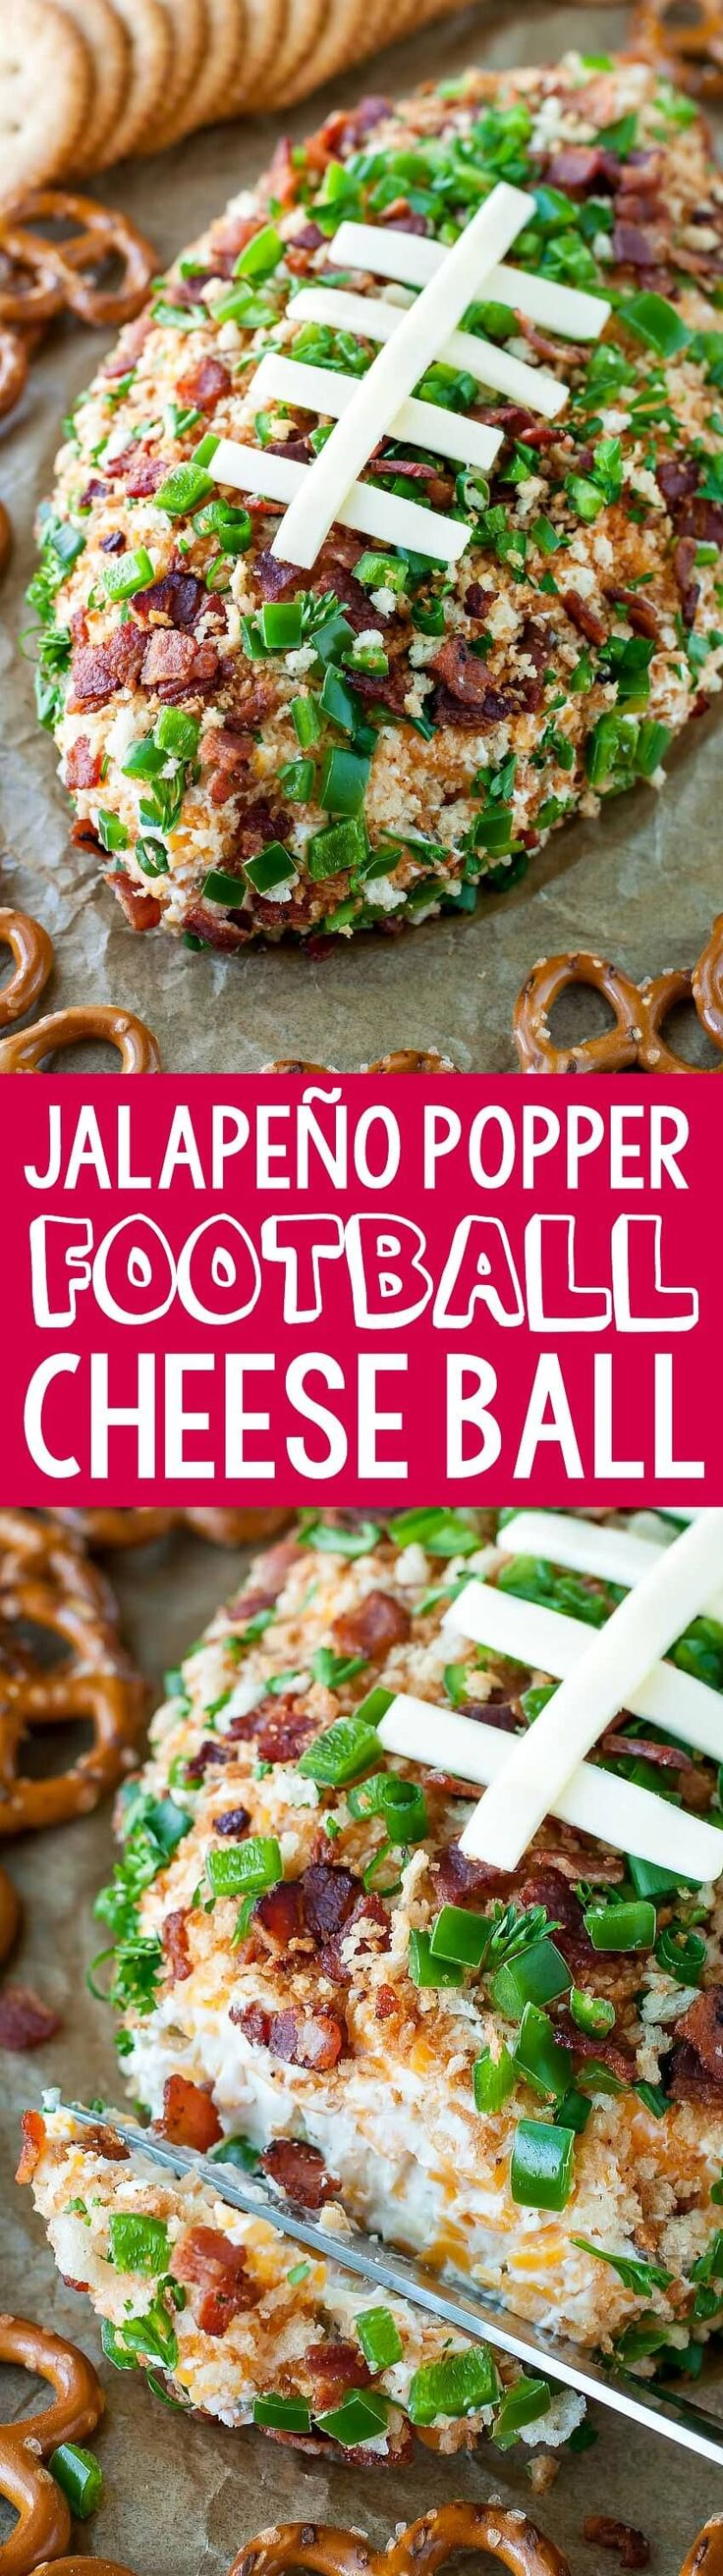 This Jalapeño Popper Football Cheese Ball is sure to make a touchdown at your…